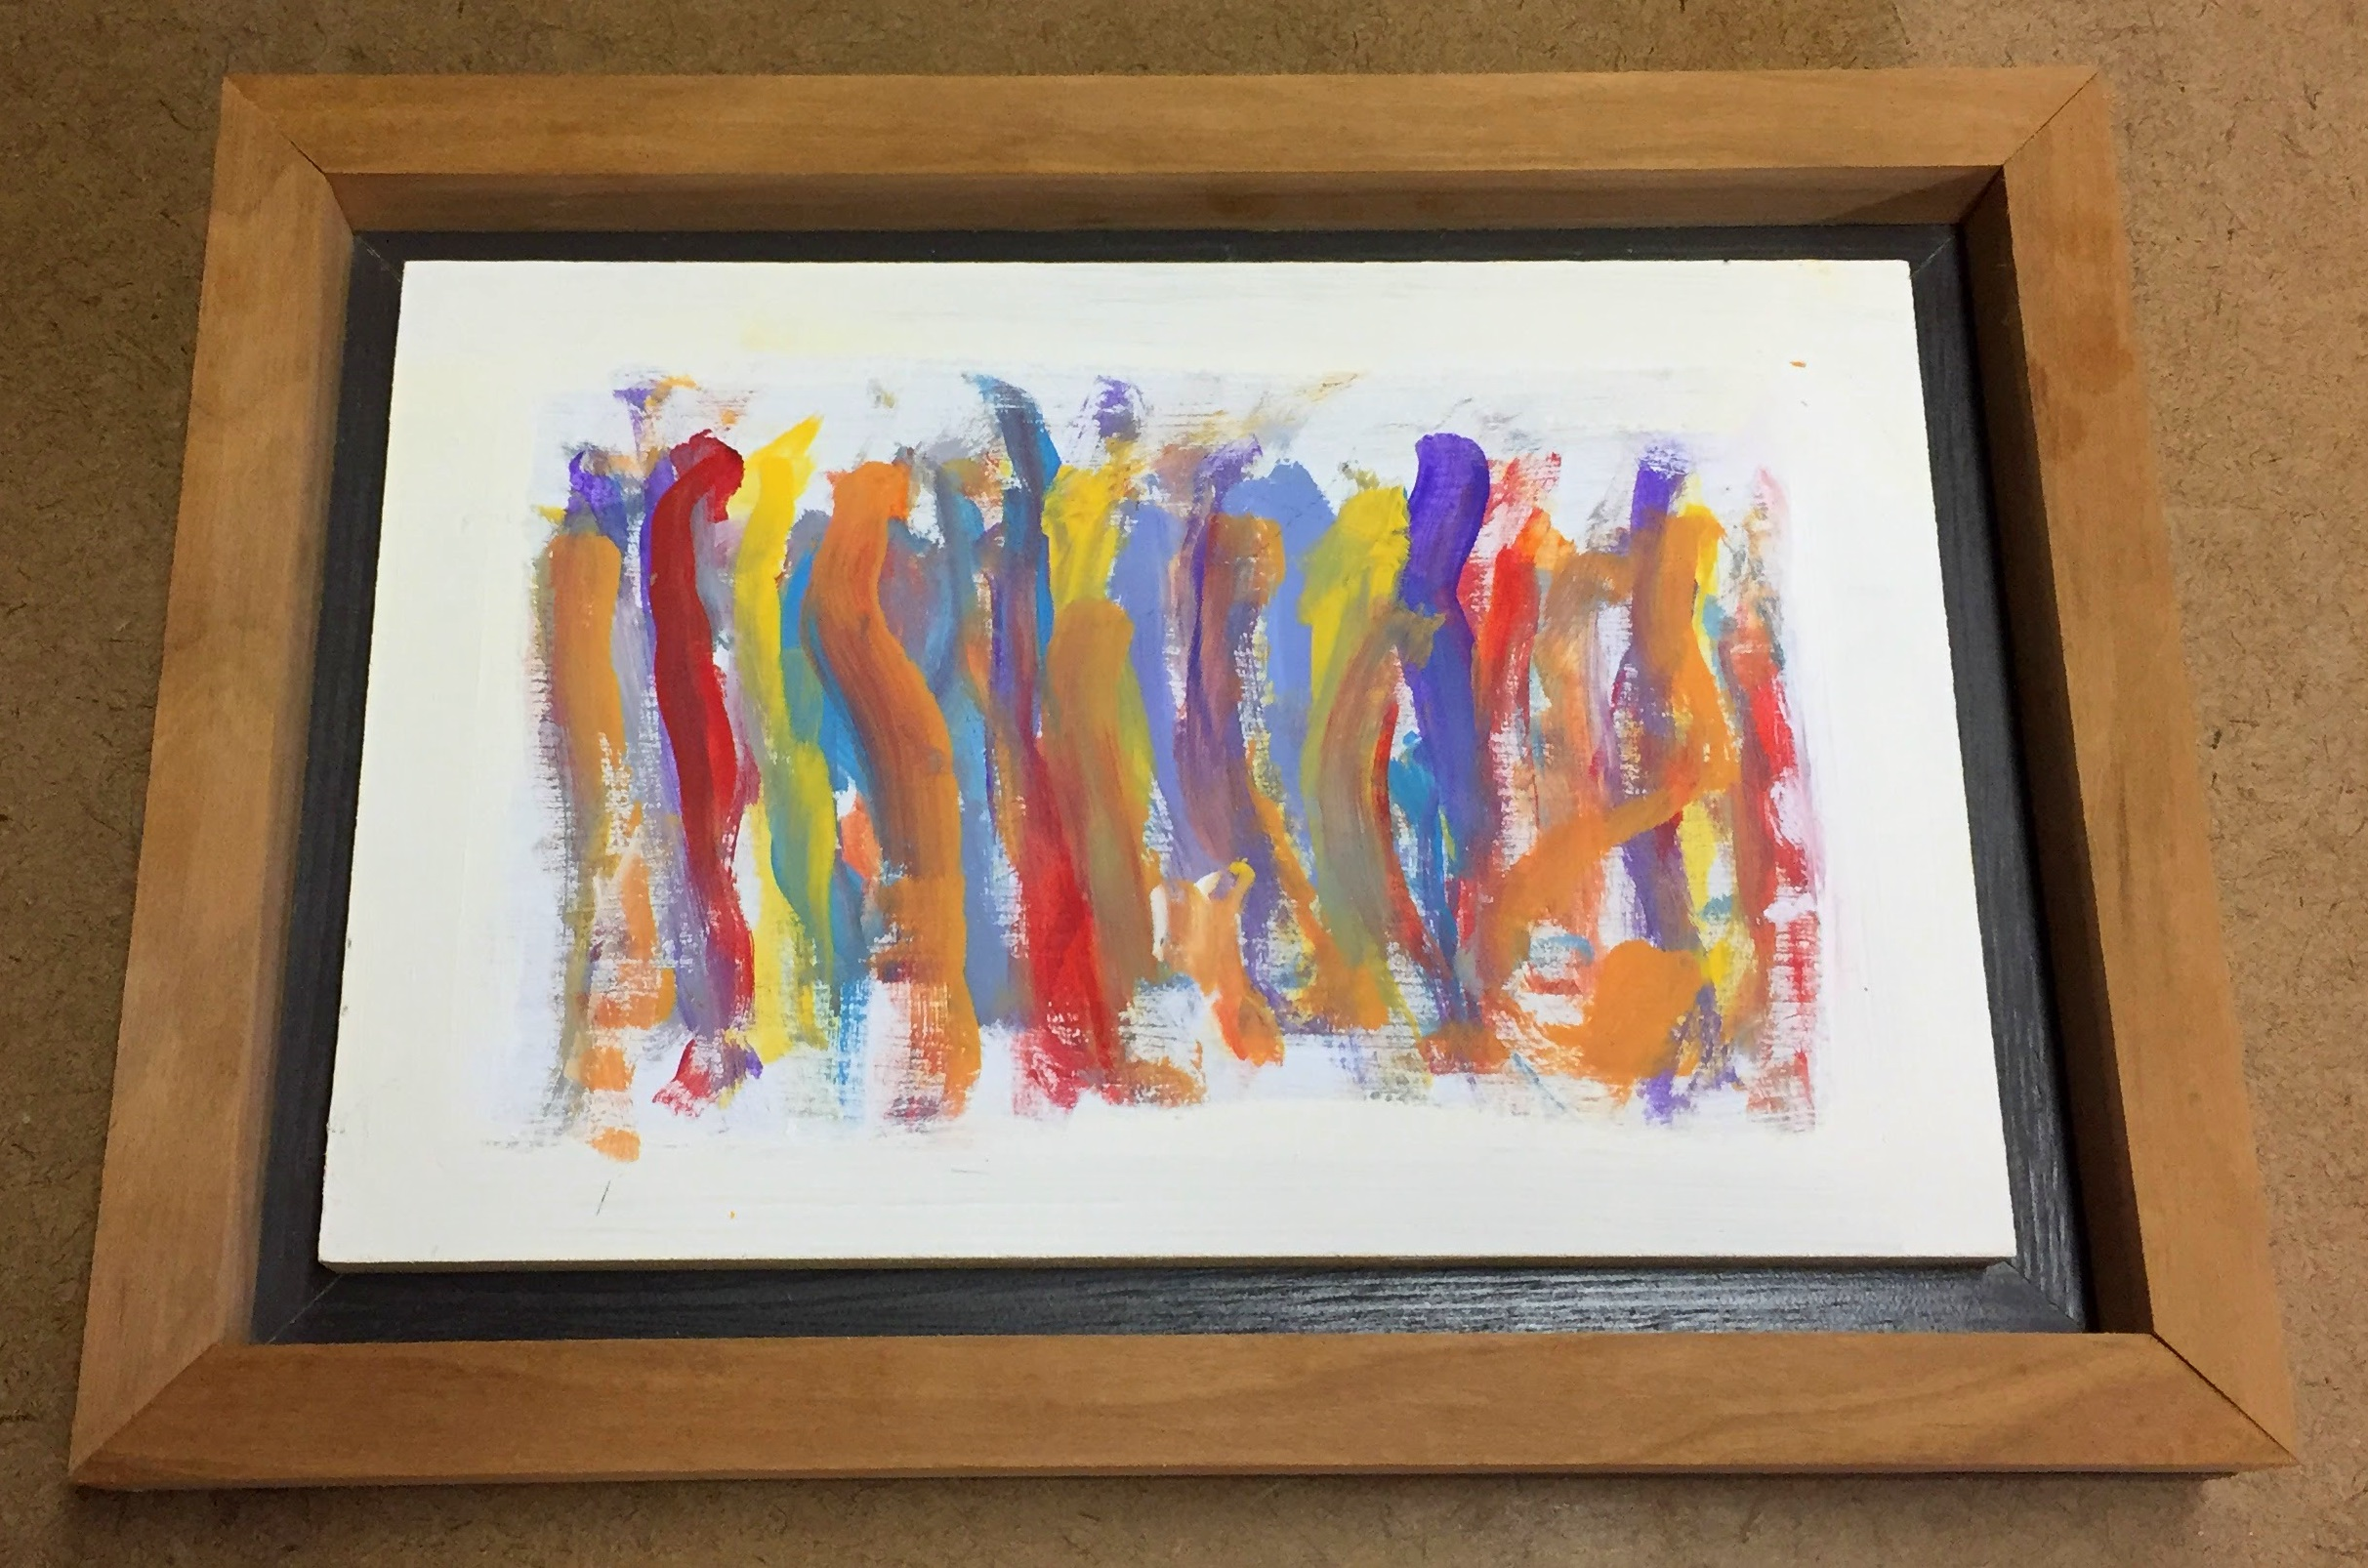 Finished framing of Liam's small abstract oil on wood